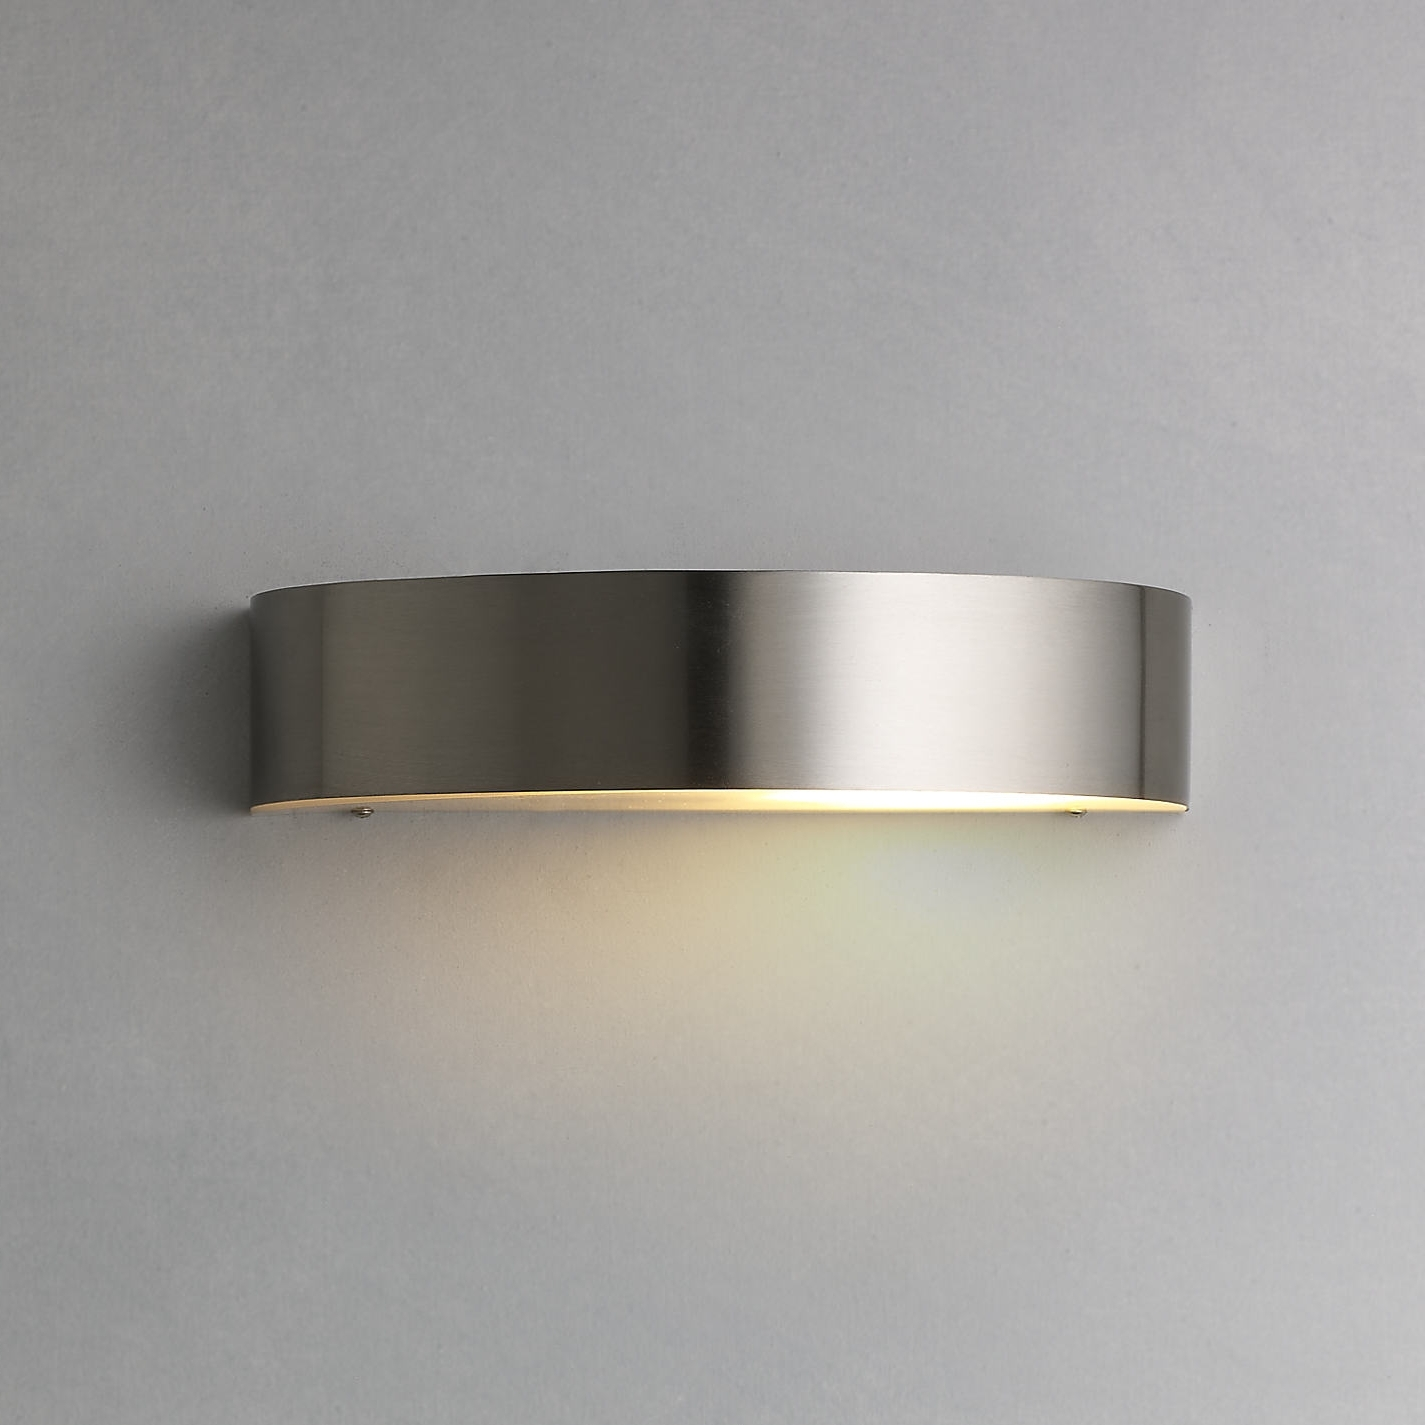 Best And Newest Outdoor Wall Lighting At B&q In Wall Lights B&q (View 8 of 20)